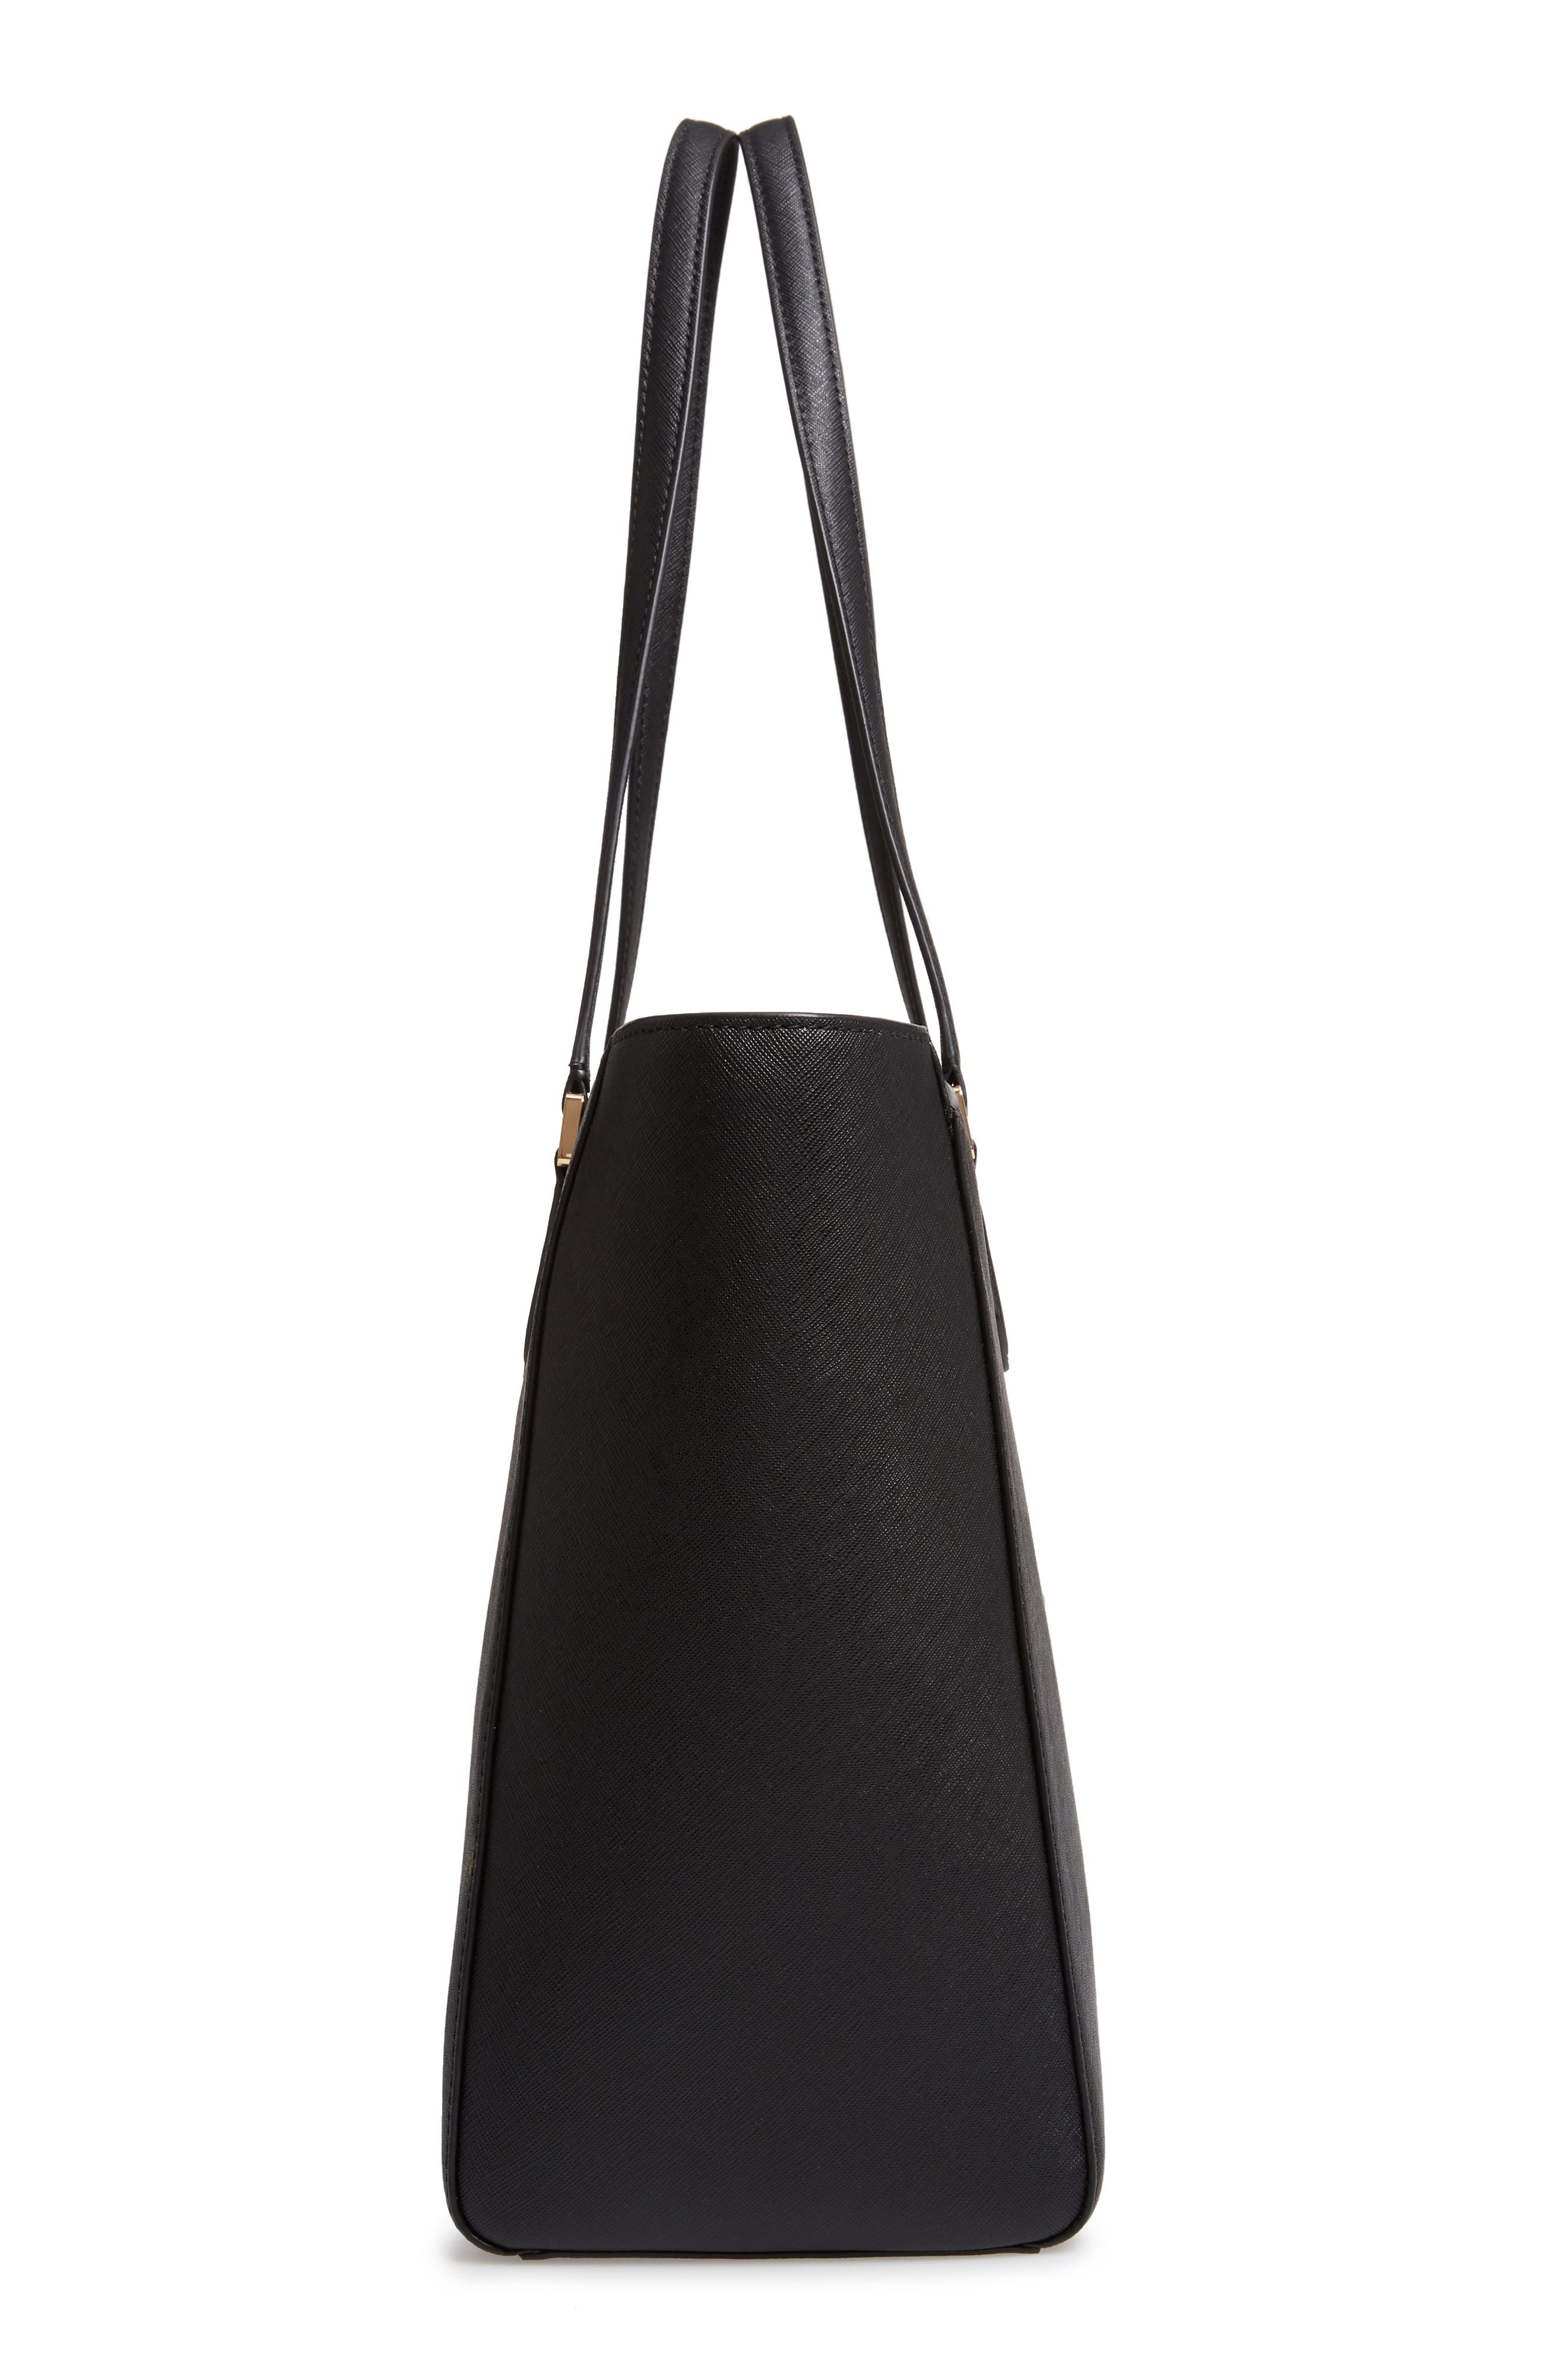 TORY BURCH, Robinson Saffiano Leather Tote, Alternate thumbnail 6, color, BLACK